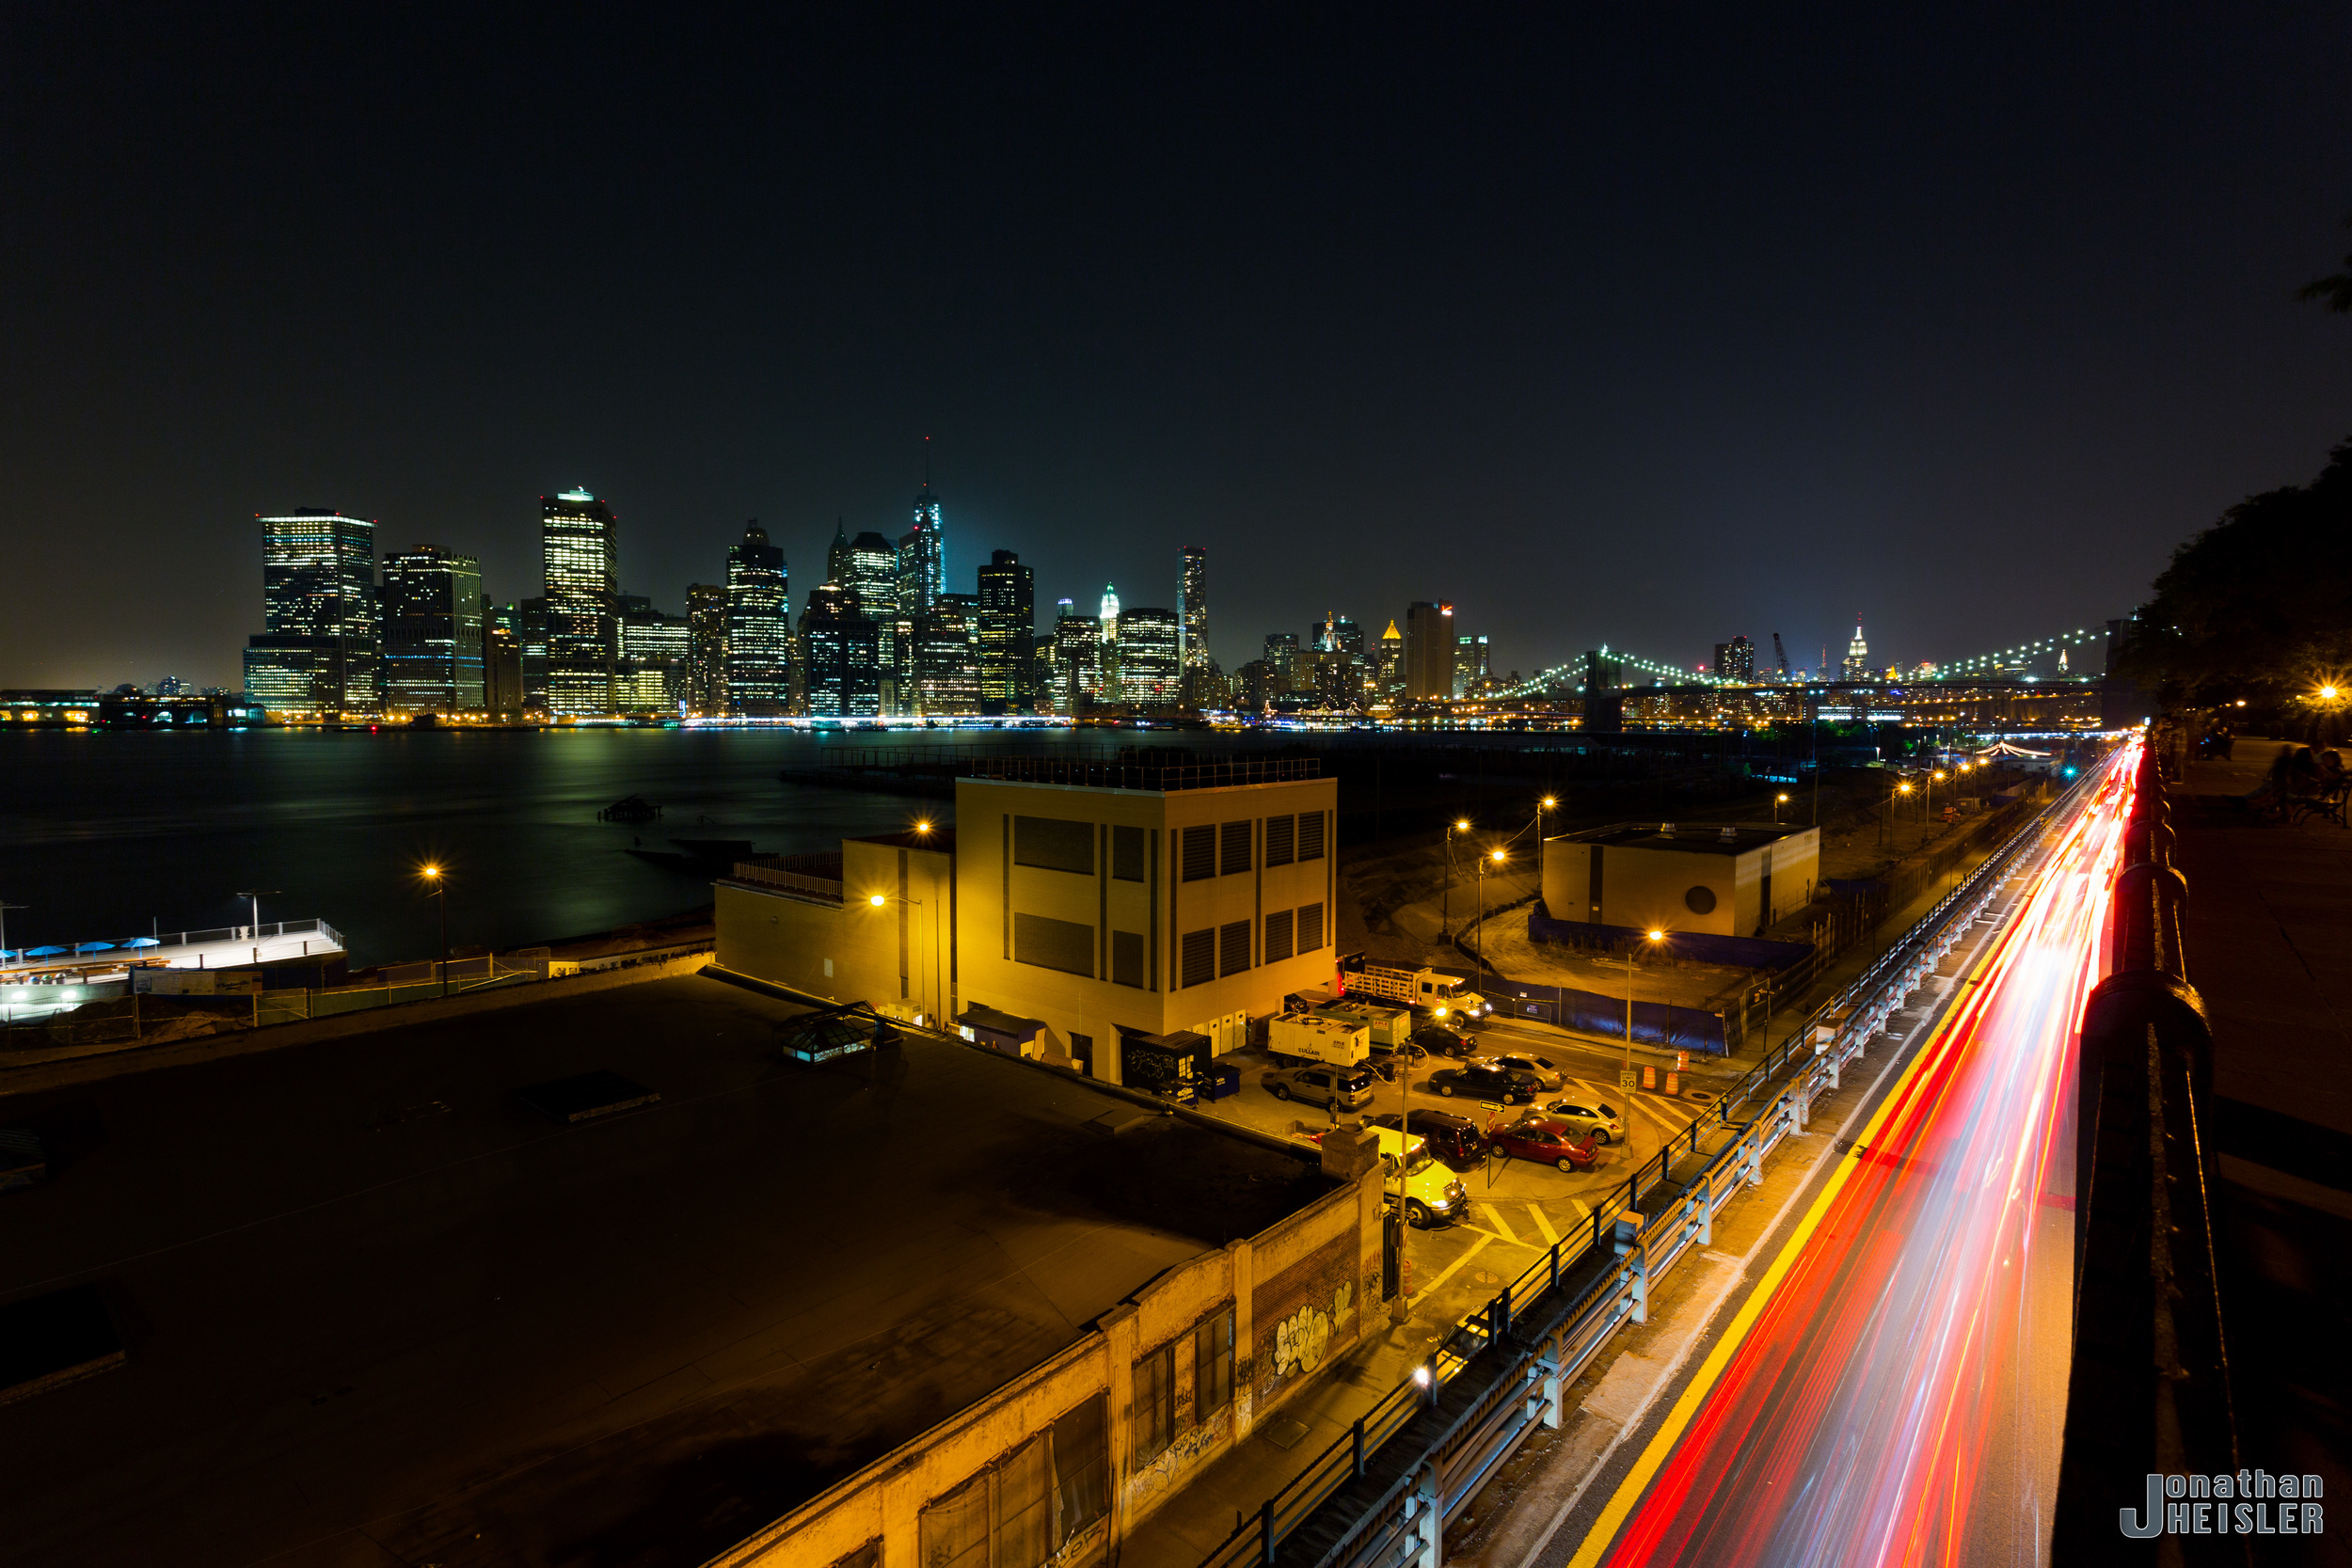 View of Lower Manhattan from the Brooklyn Promenade